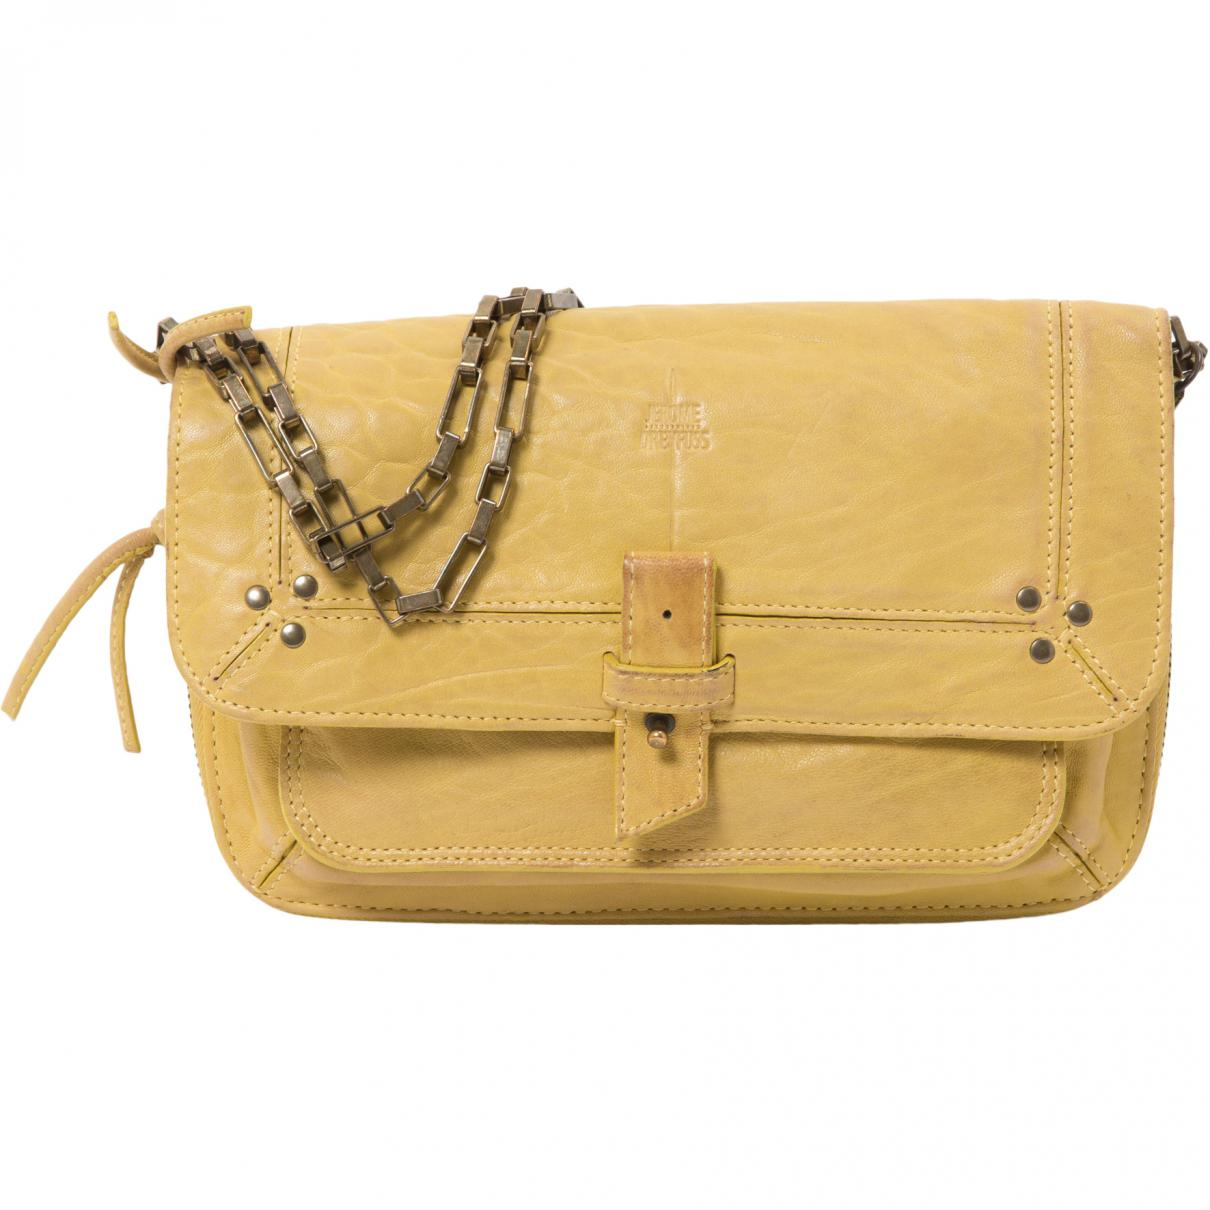 Jerome Dreyfuss Pre-owned - Leather clutch bag dGfp0c